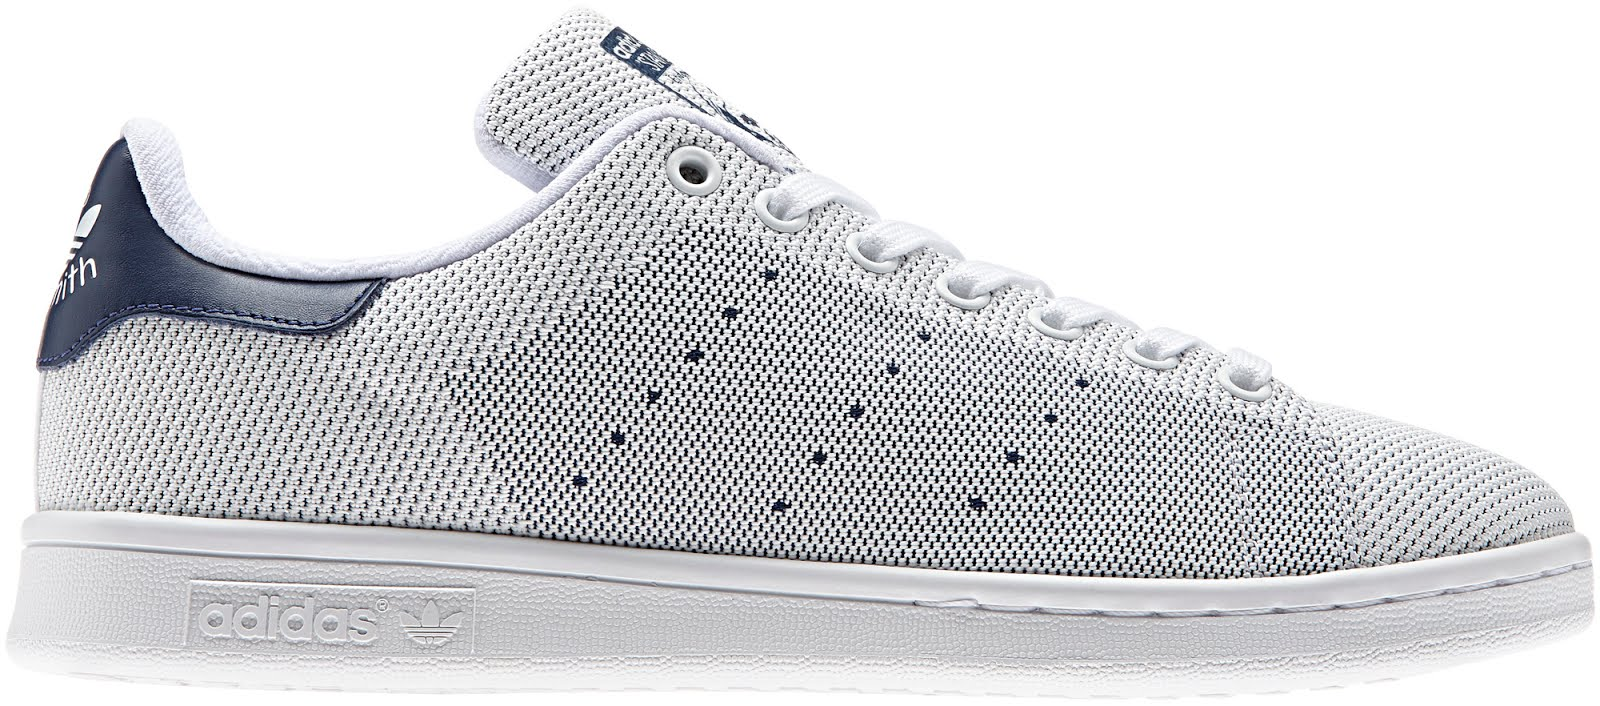 Best Selling Tennis Shoe Of All Time